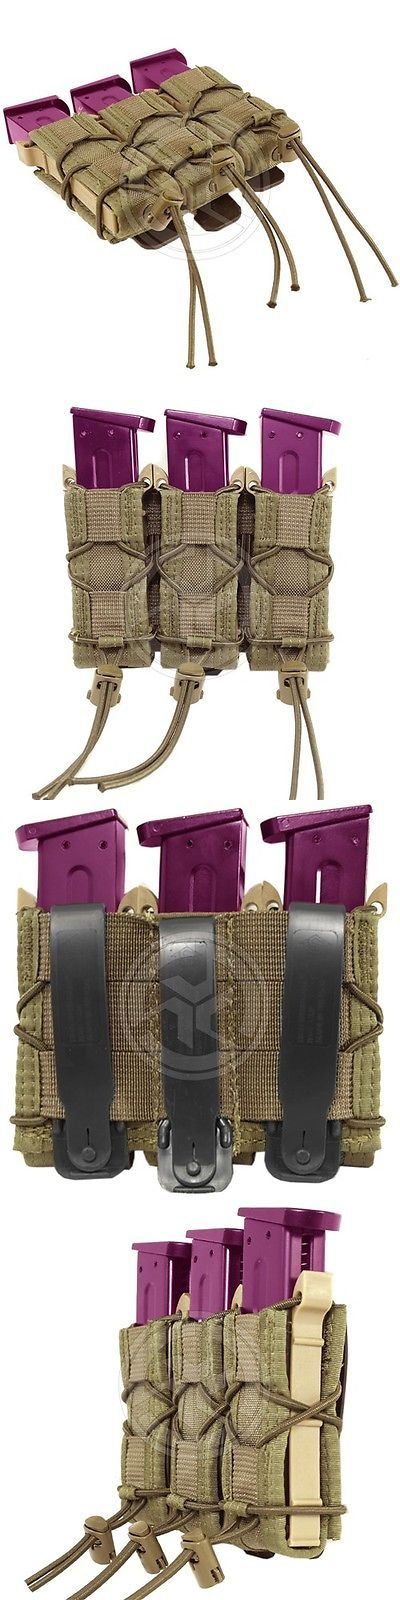 Tactical Molle Pouches 177900: Hsg High Speed Gear Triple Pistol Magazine Taco Molle Tool Pouch Coyote Brown -> BUY IT NOW ONLY: $75 on eBay!